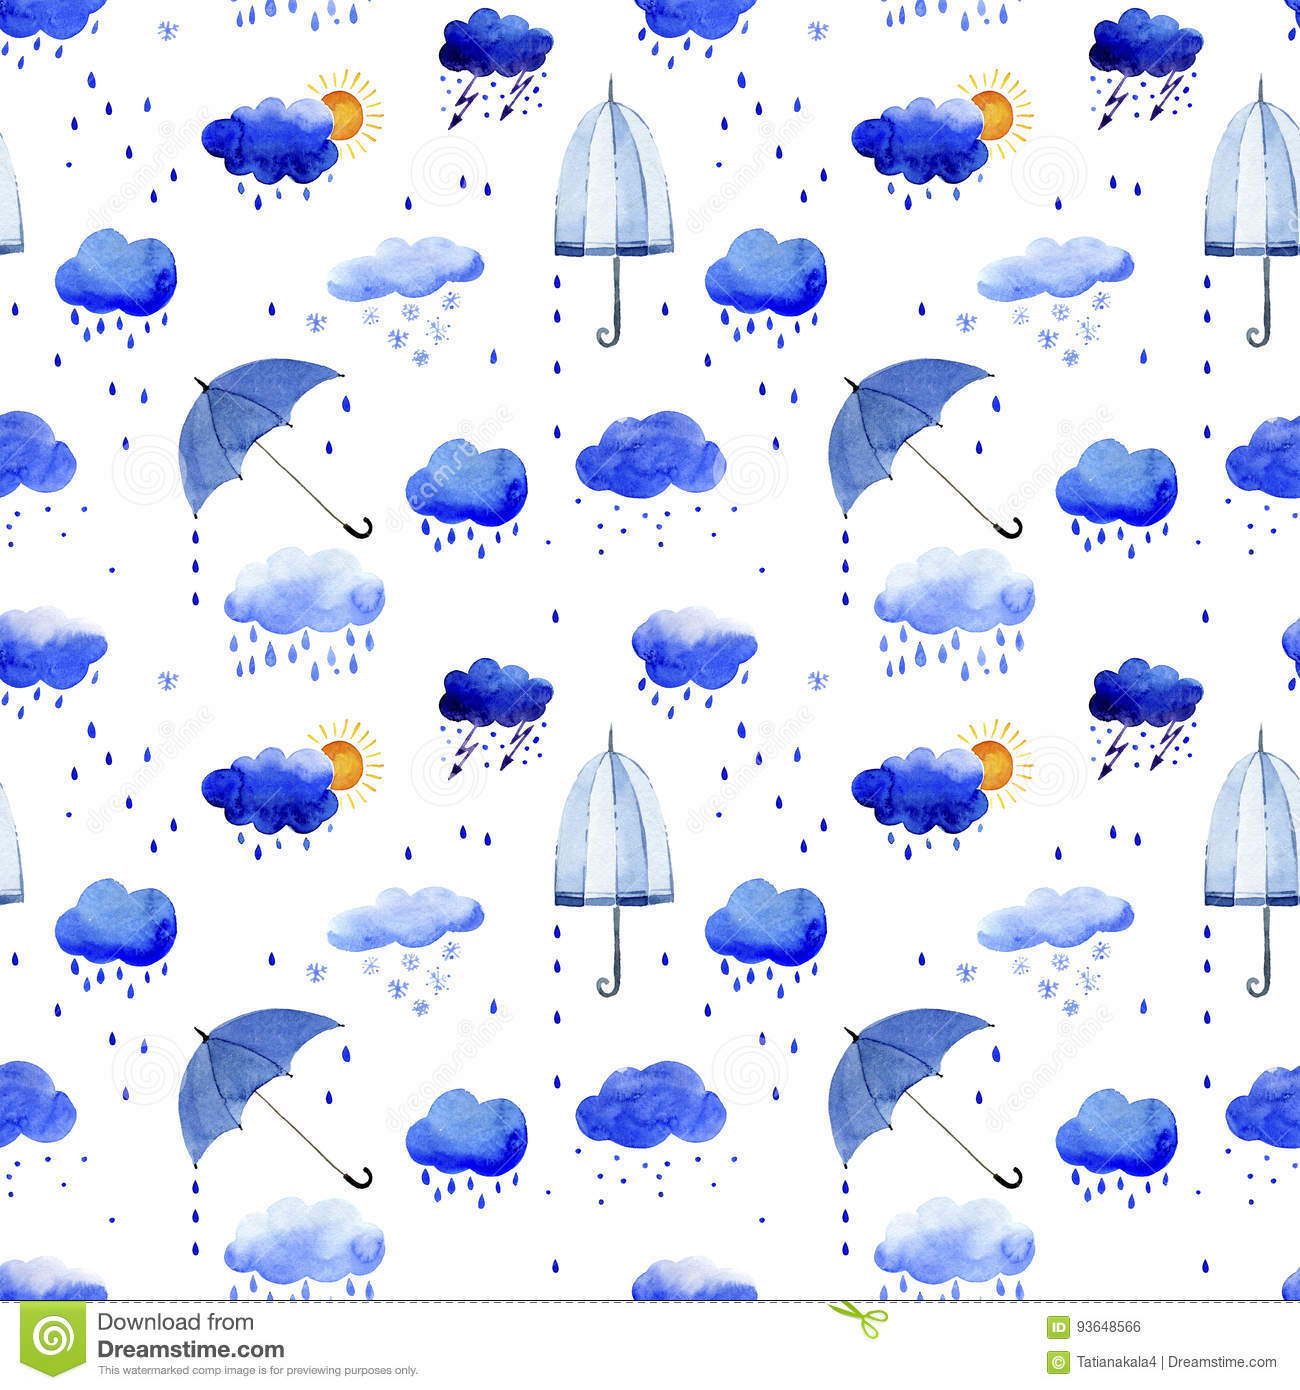 Seamless watercolor pattern of rain clouds and umbrellas